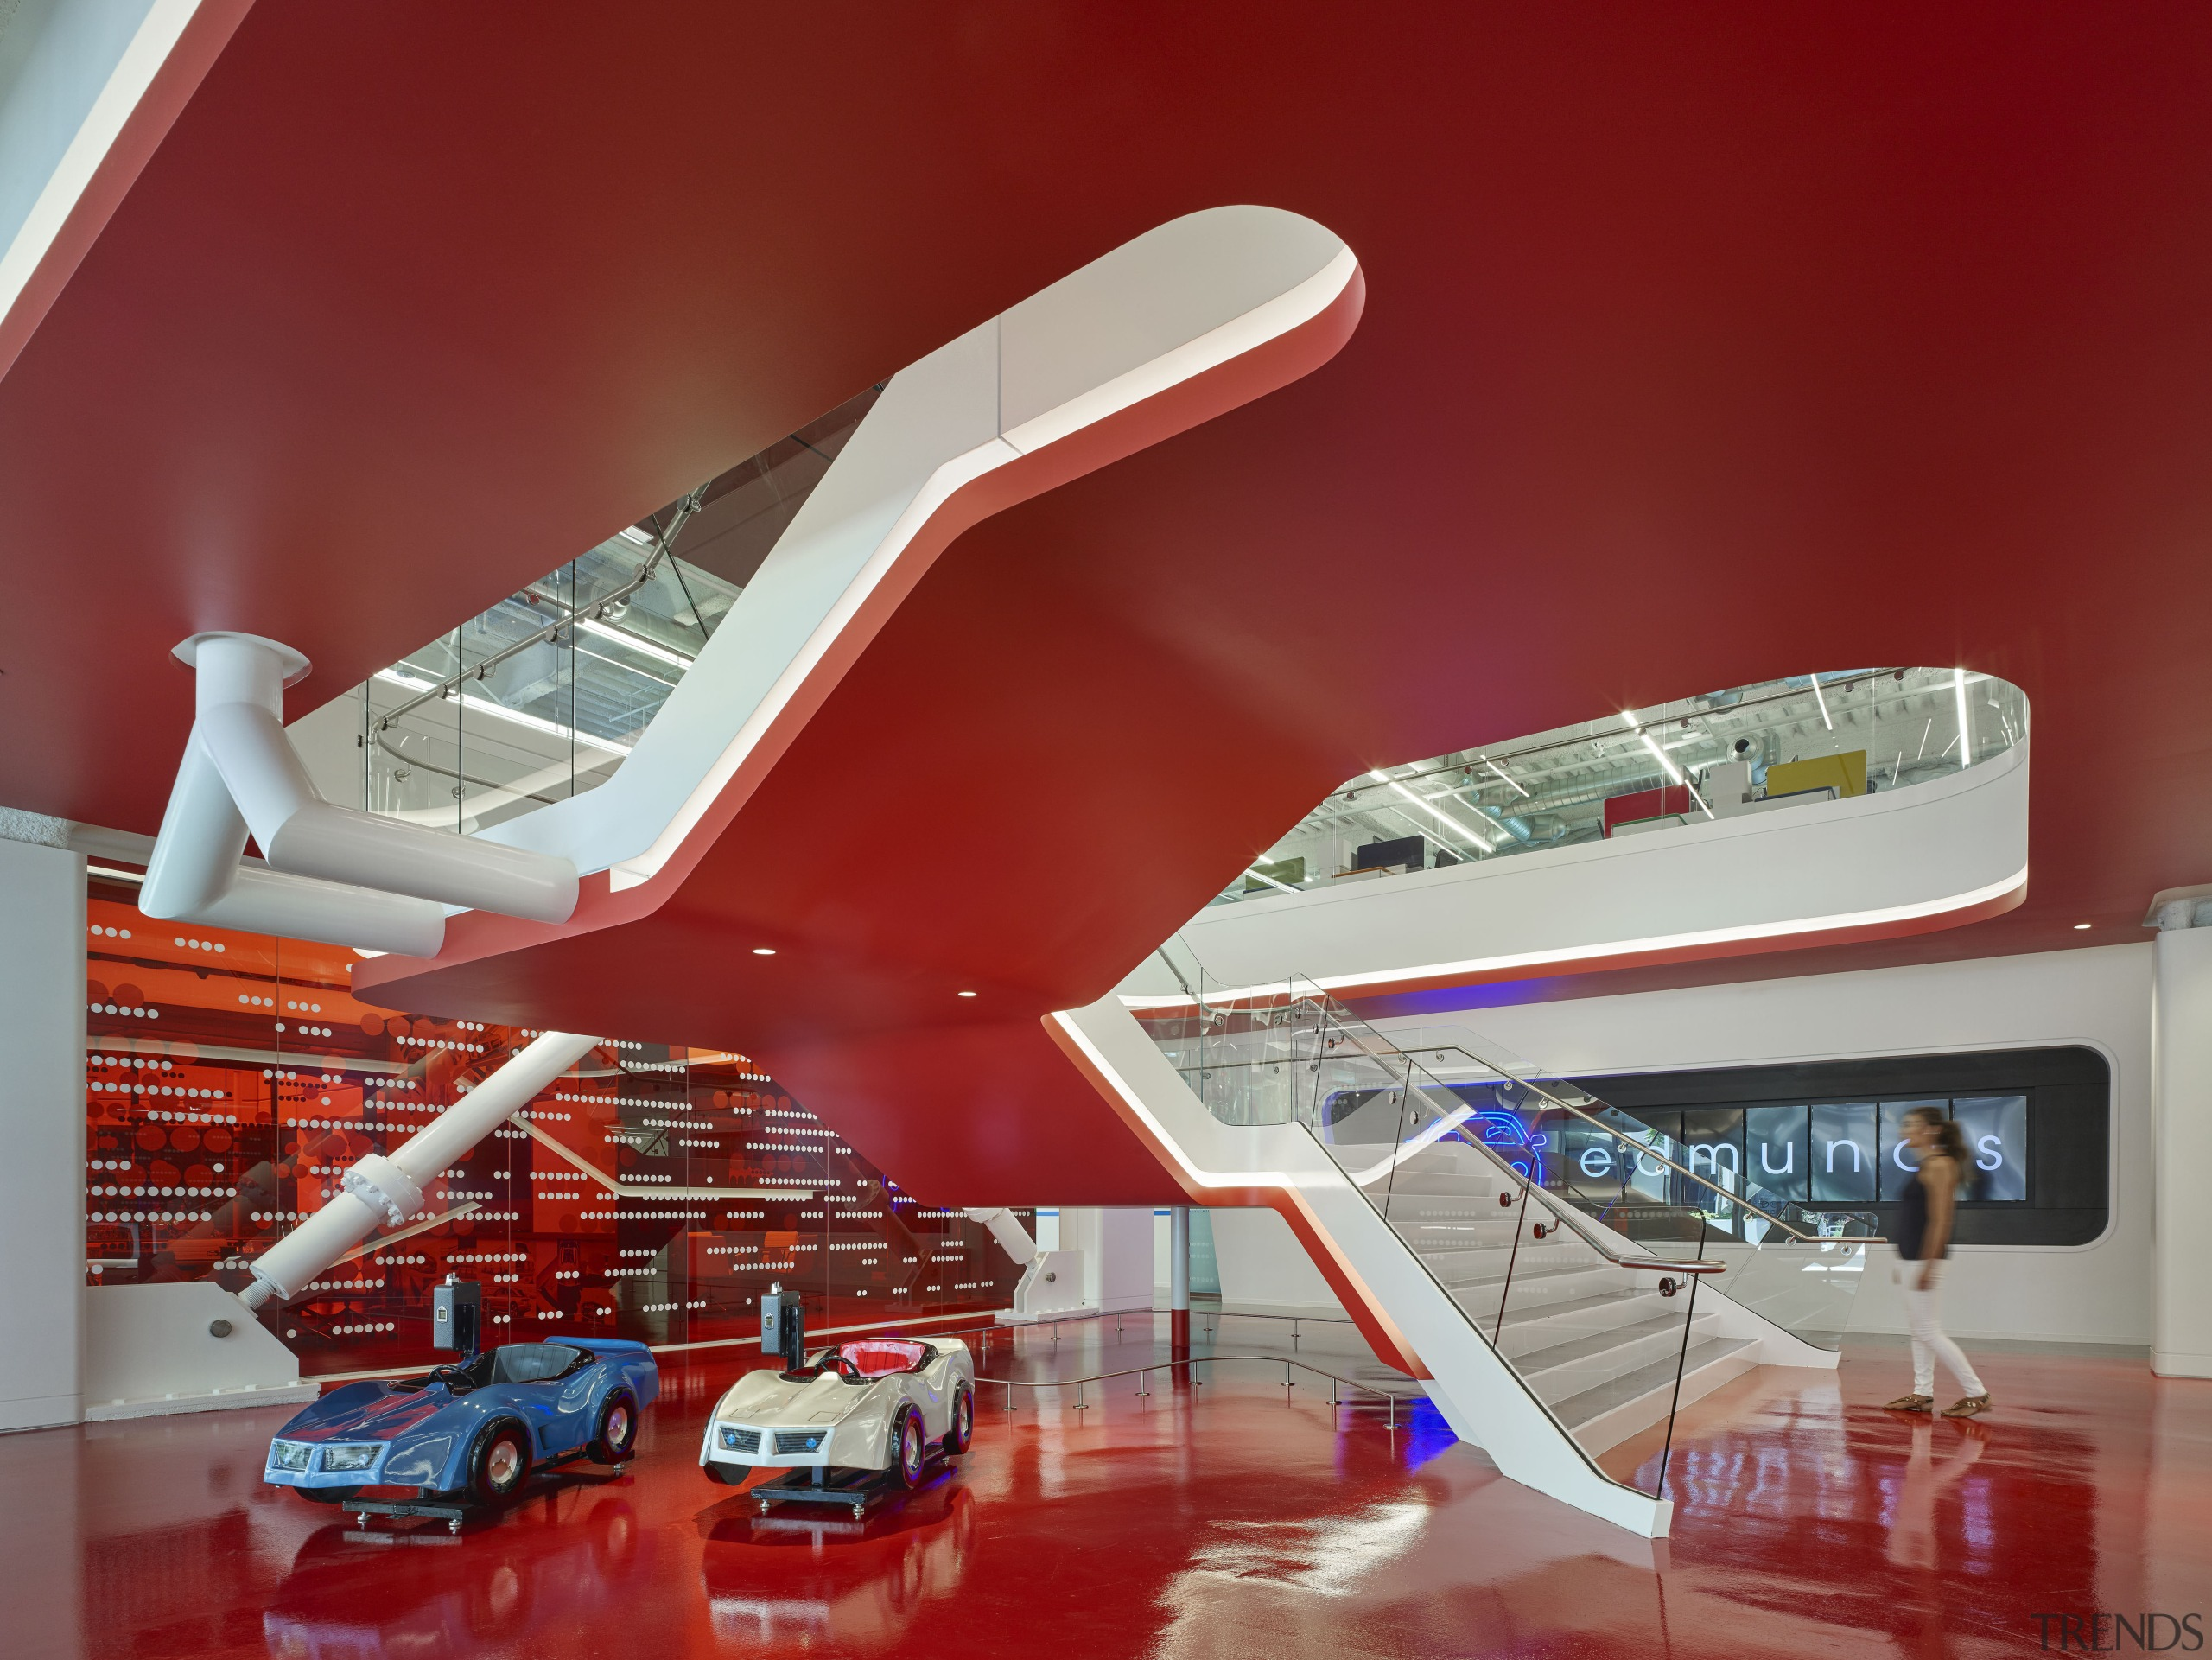 The main stairs next to reception at Edmunds.com architecture, mode of transport, product, product design, red, gray